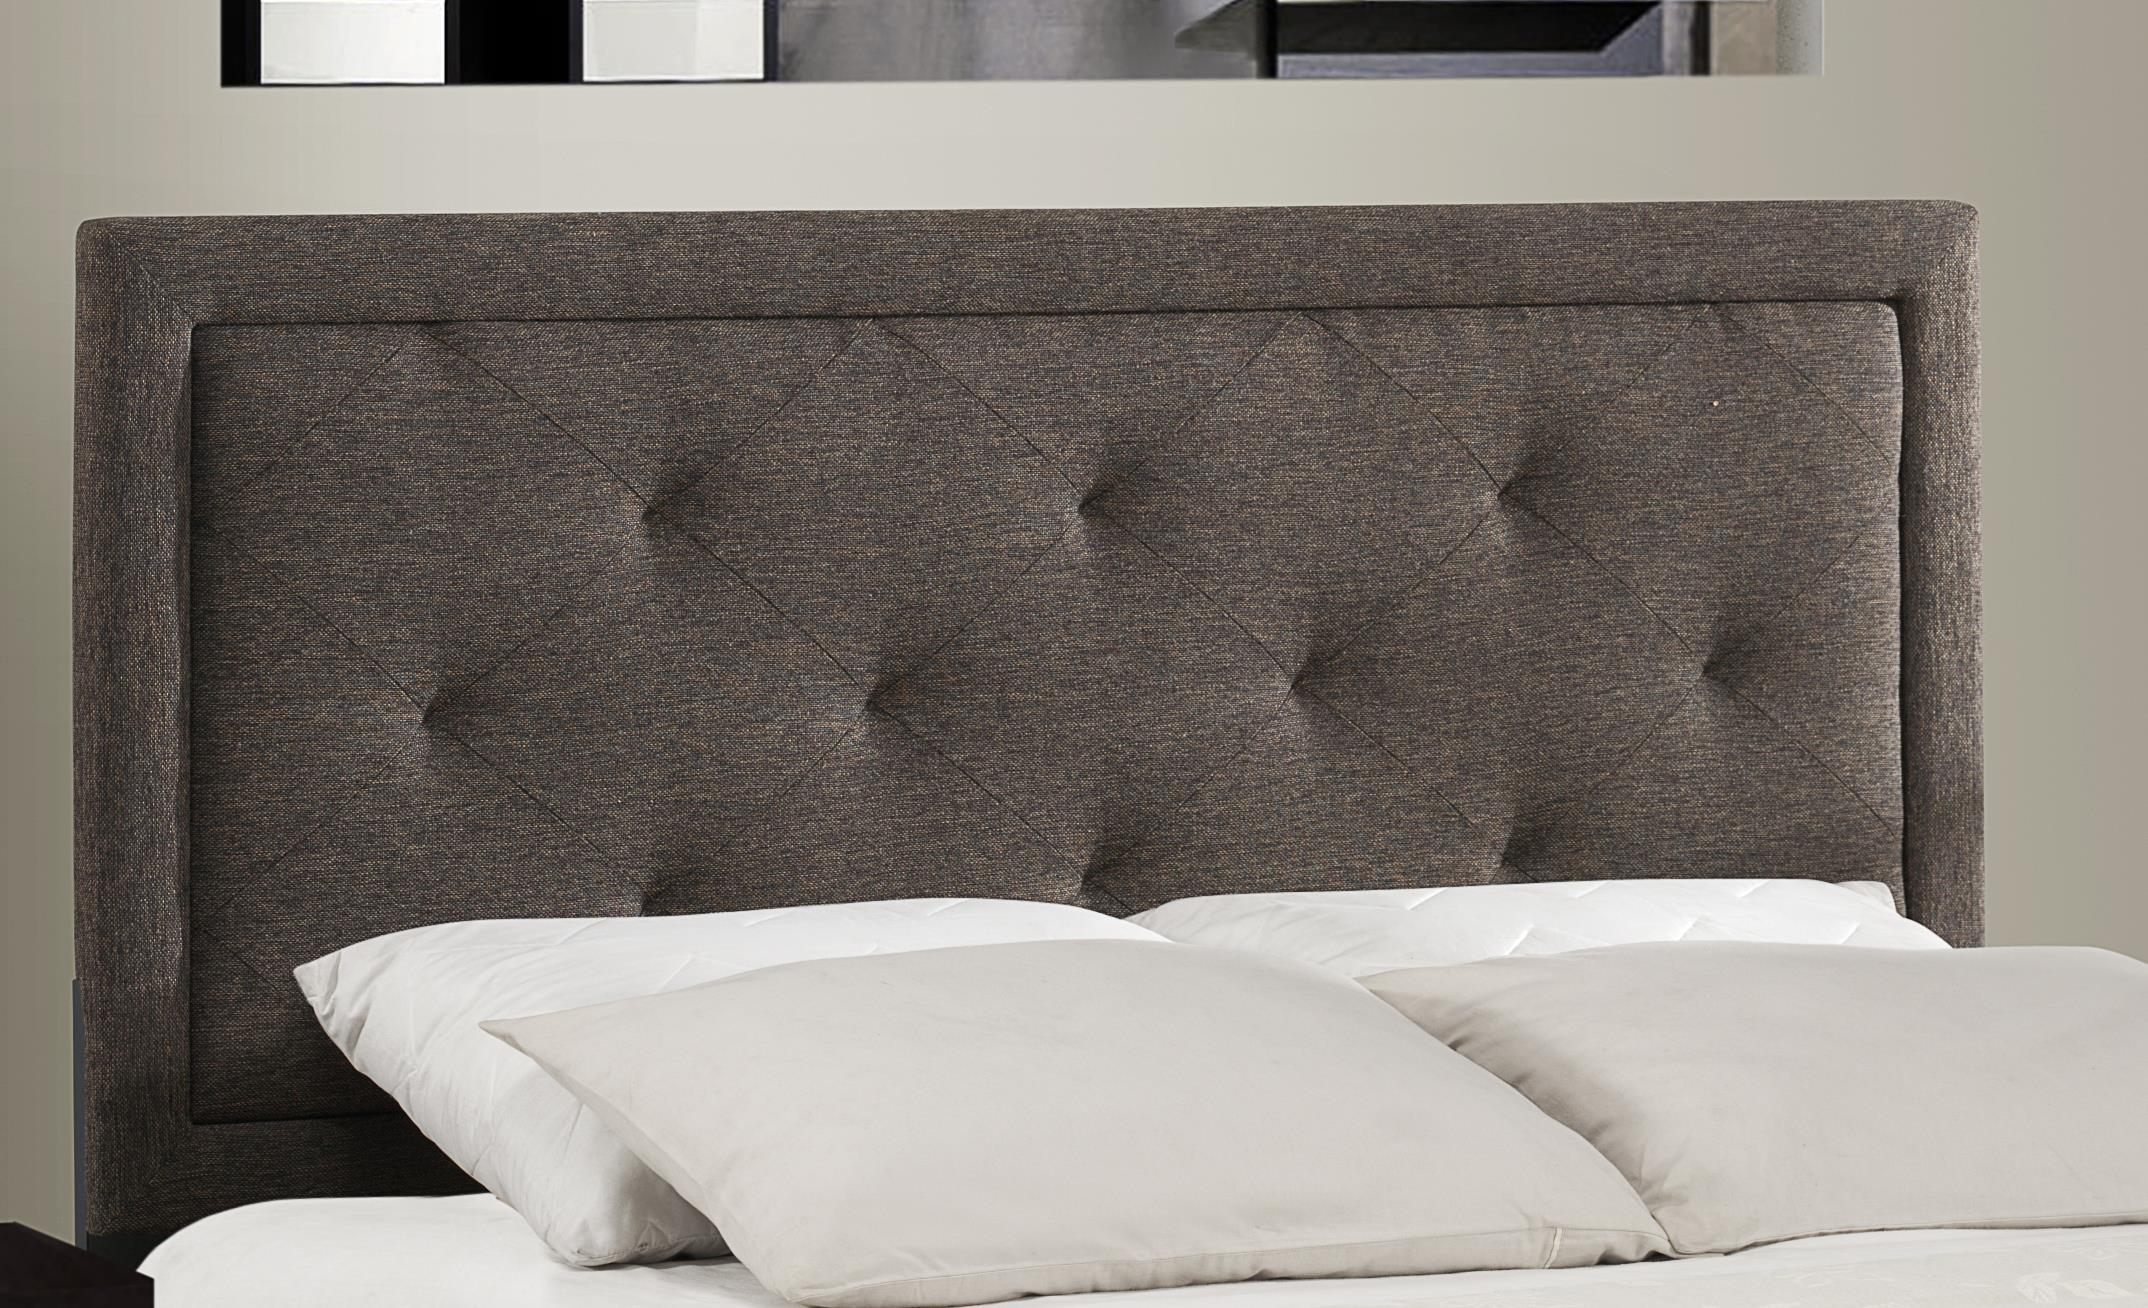 Hillsdale Upholstered Beds Becker Queen Headboard With Button